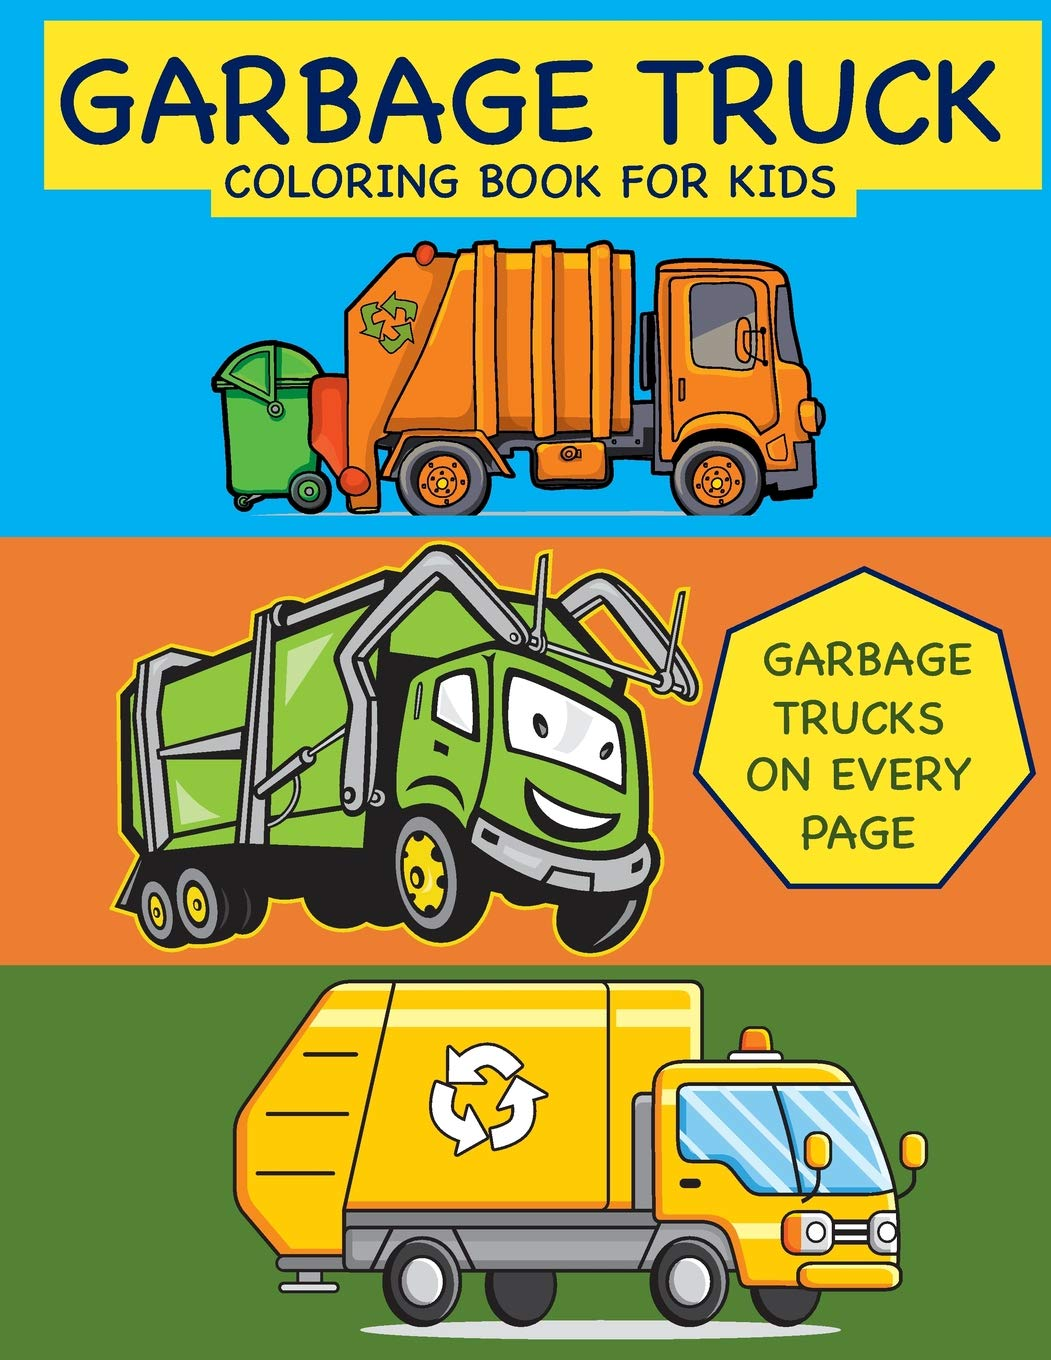 Garbage Truck Coloring Book For Kids Garbage Trucks On Every Page Coloring Book For Toddlers Preschool Kindergarten Books Busy Hands 9781093121599 Books Amazon Ca